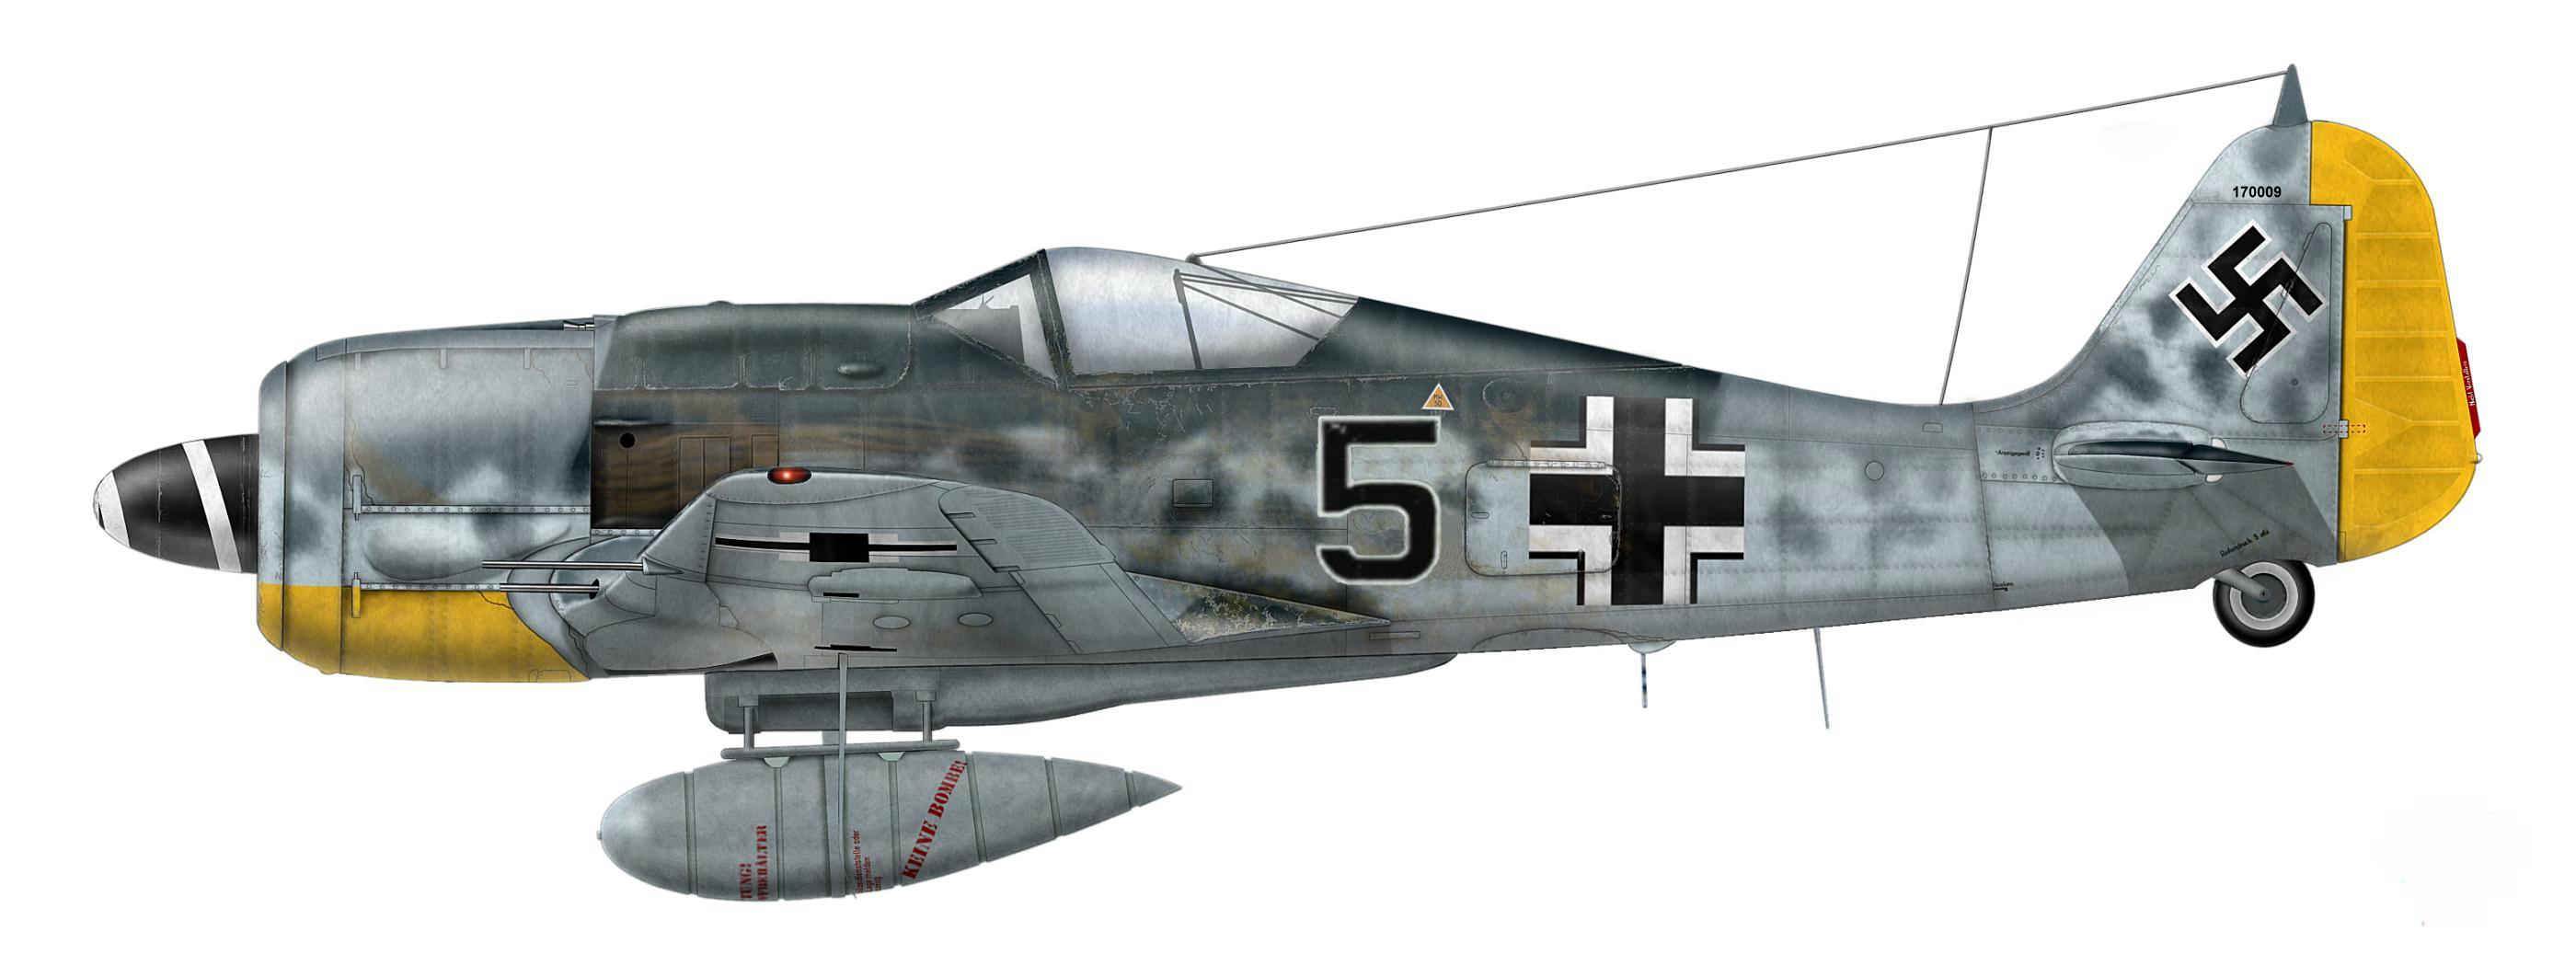 10.5 - Fw 190 A-8, de Karl Willius, 2.JG26, France 1944